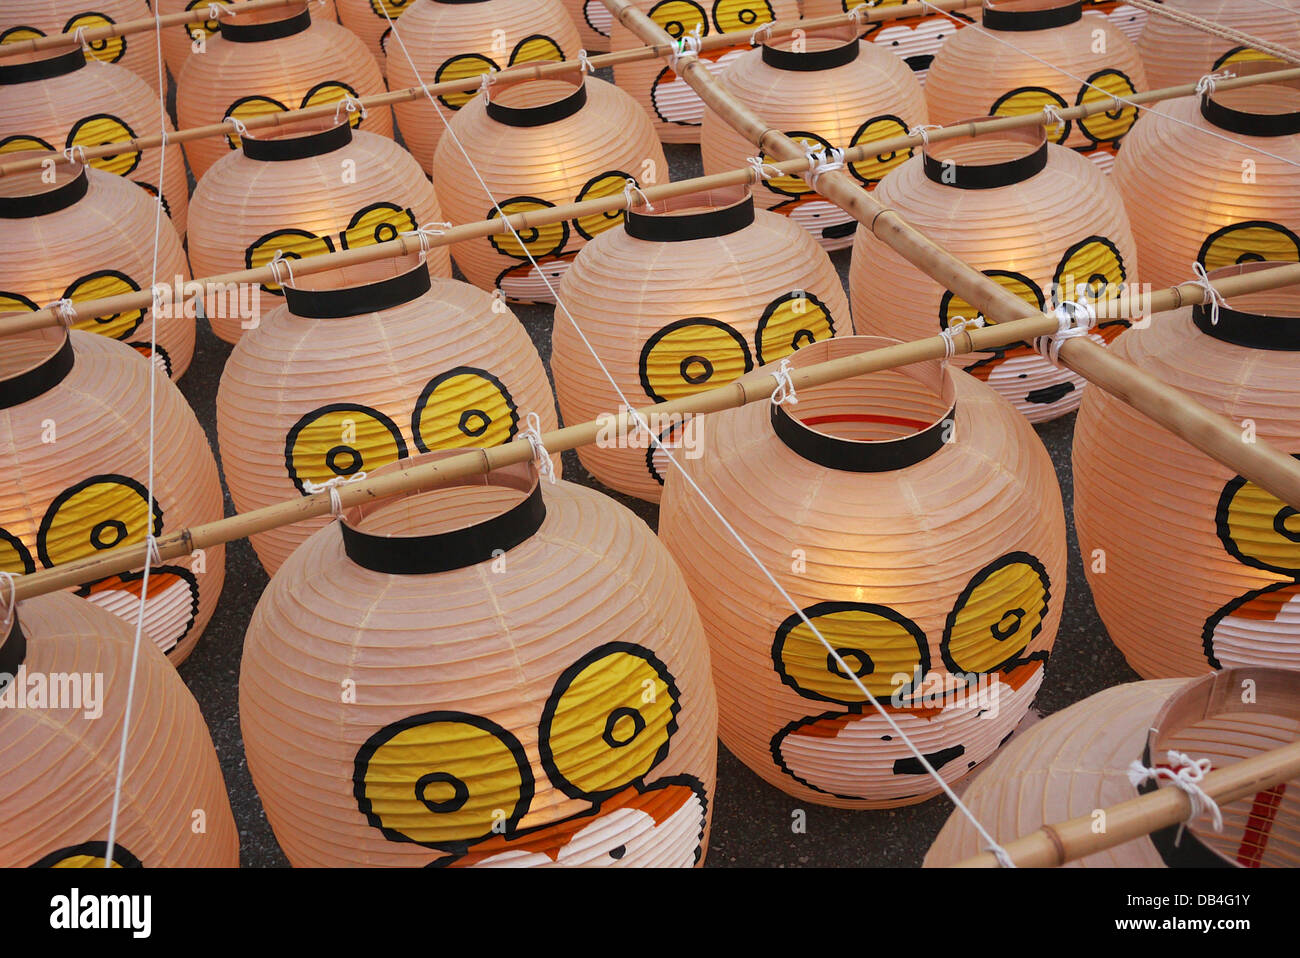 Traditional Japanese Lanterns tied to bamboo poles for the Akita Kanto Festival Stock Photo